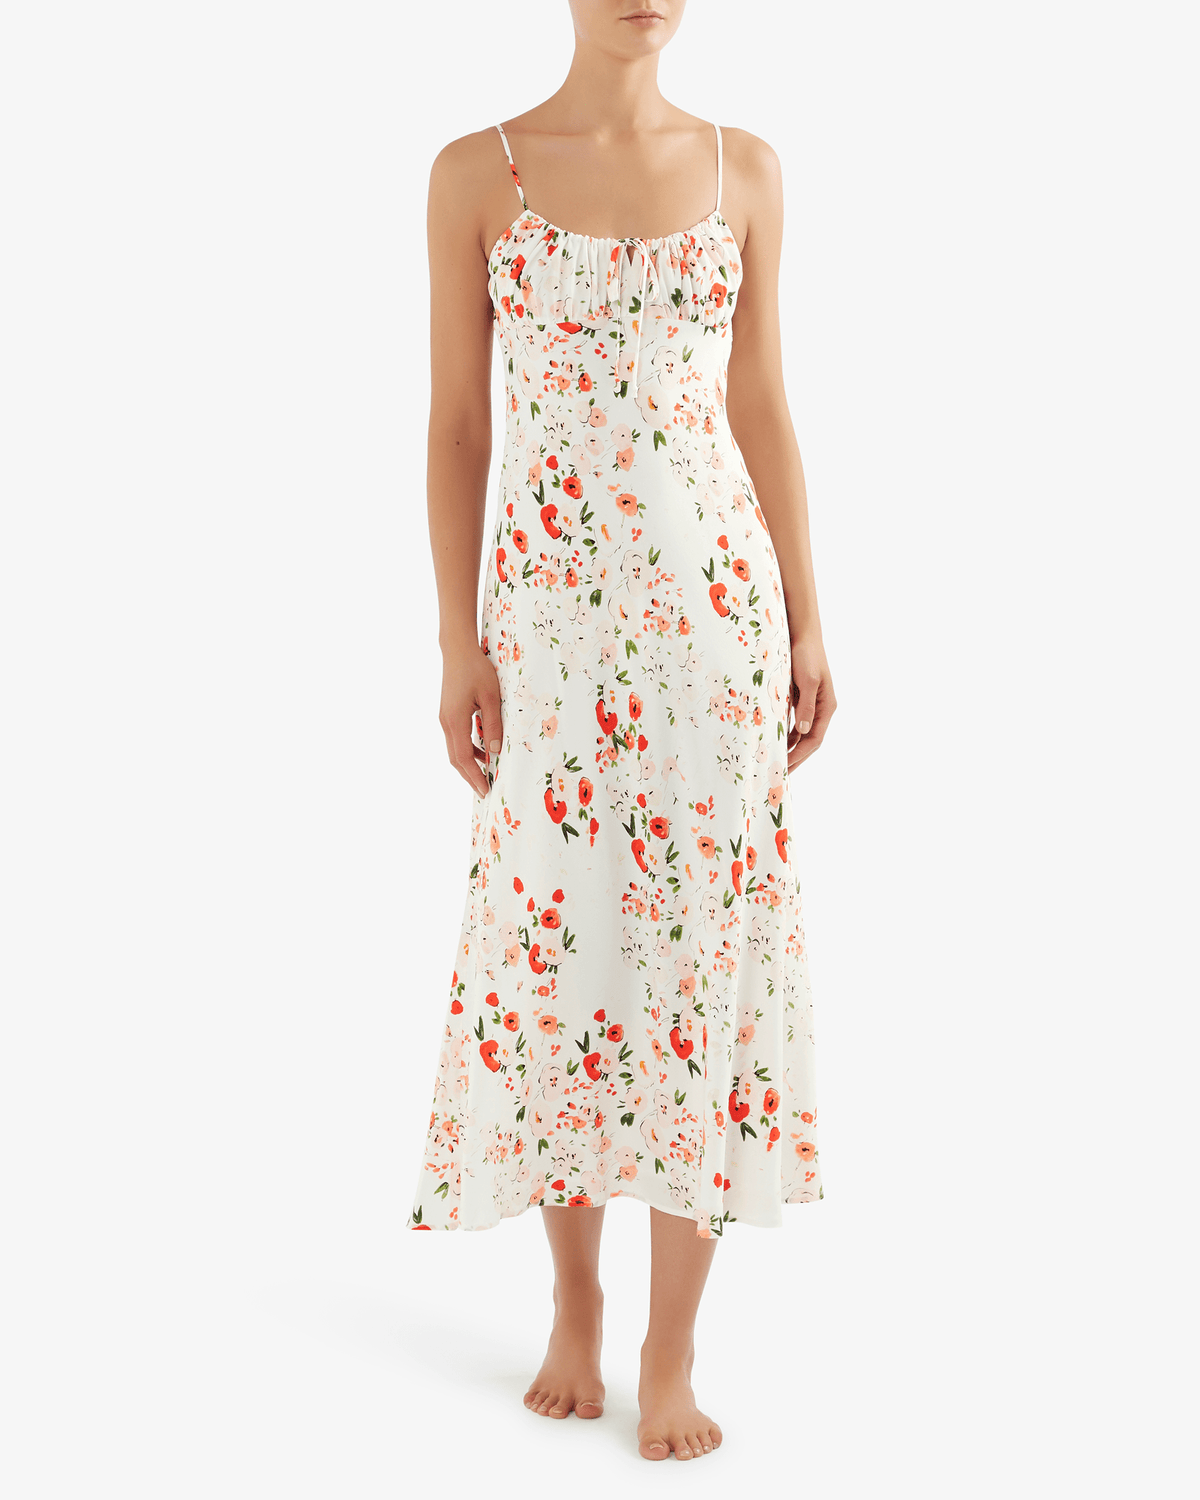 Bec + Bridge Tilly midi dress in water colour floral